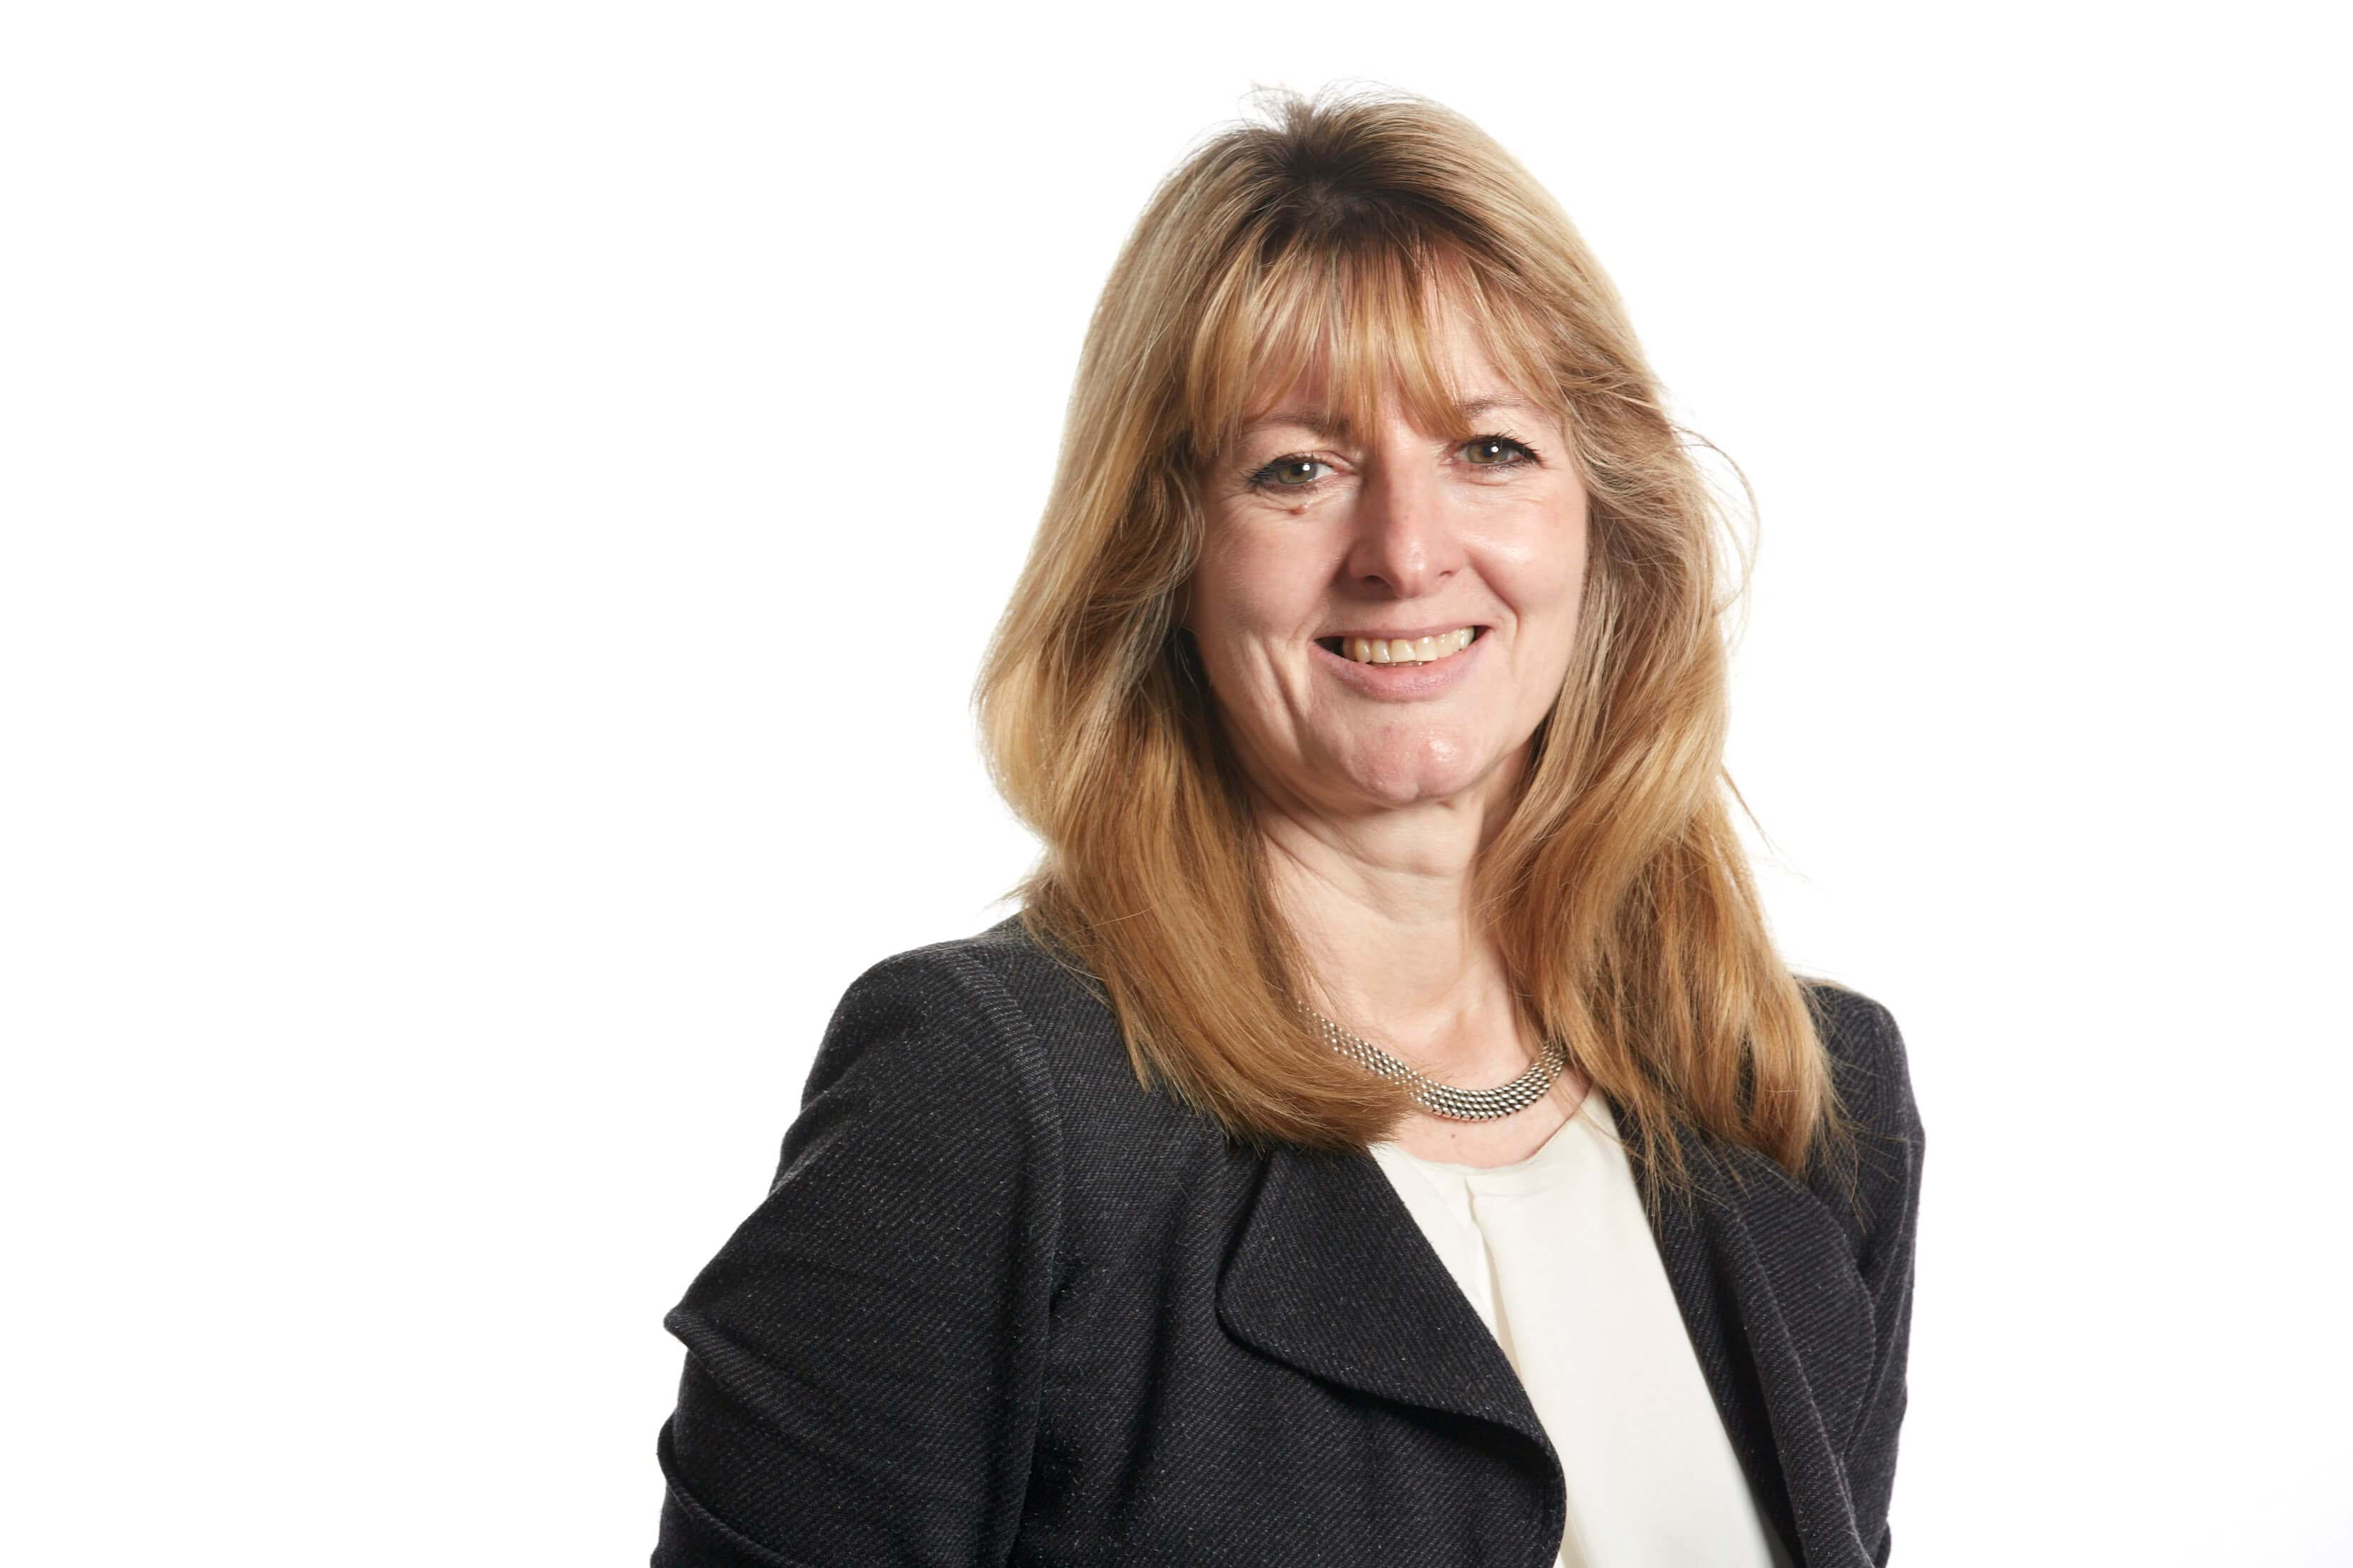 A profile of Linda Millband, Thompsons' Solicitors national lead lawyer for clinical negligence